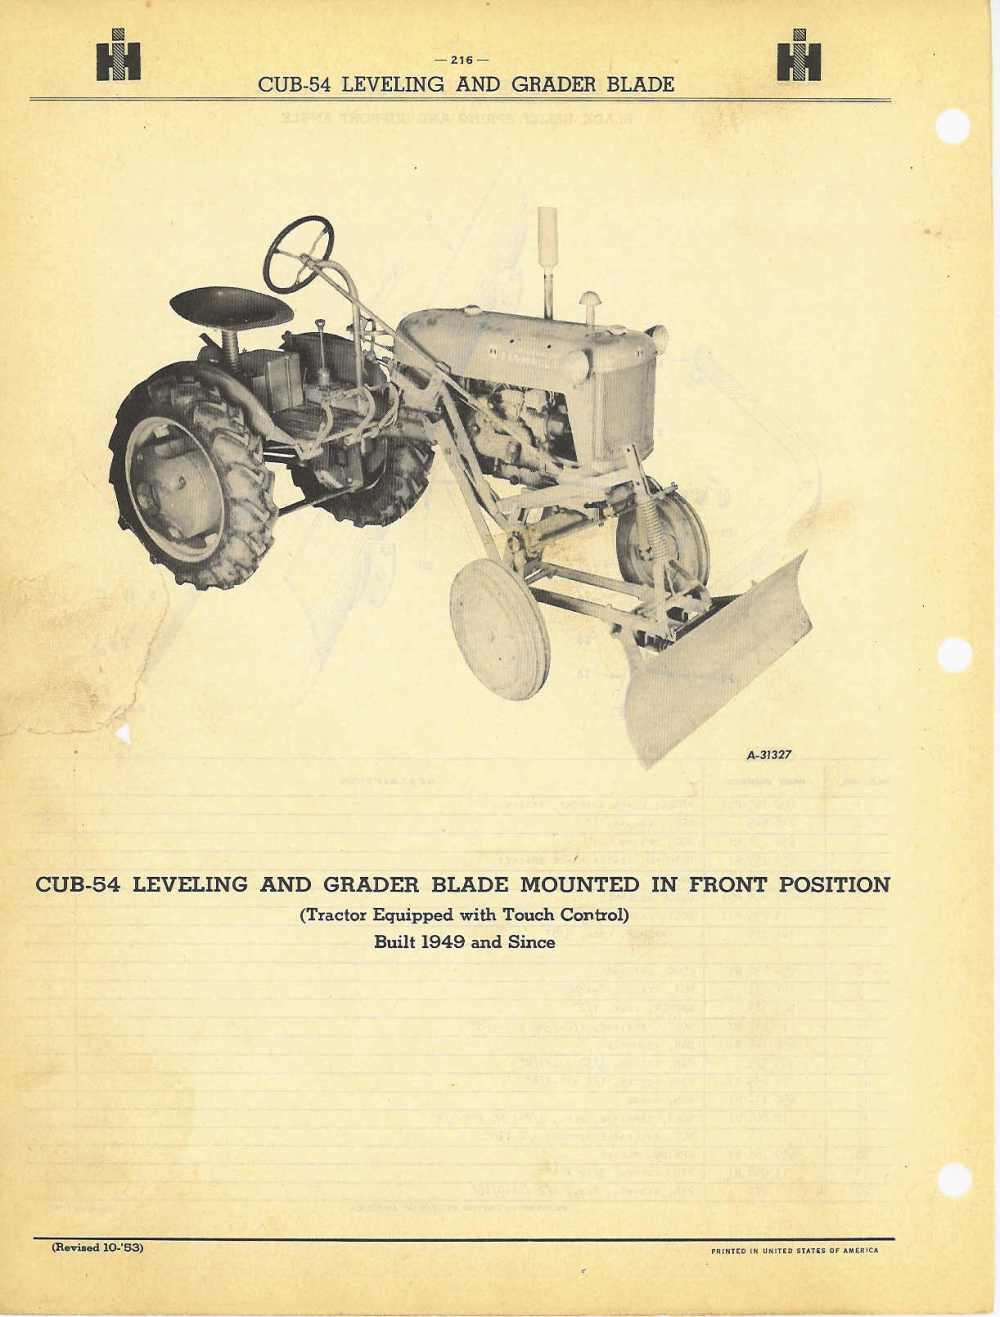 medium resolution of cub leveling and grader blade farmall 400 tractor diagram cub leveling and grader blade